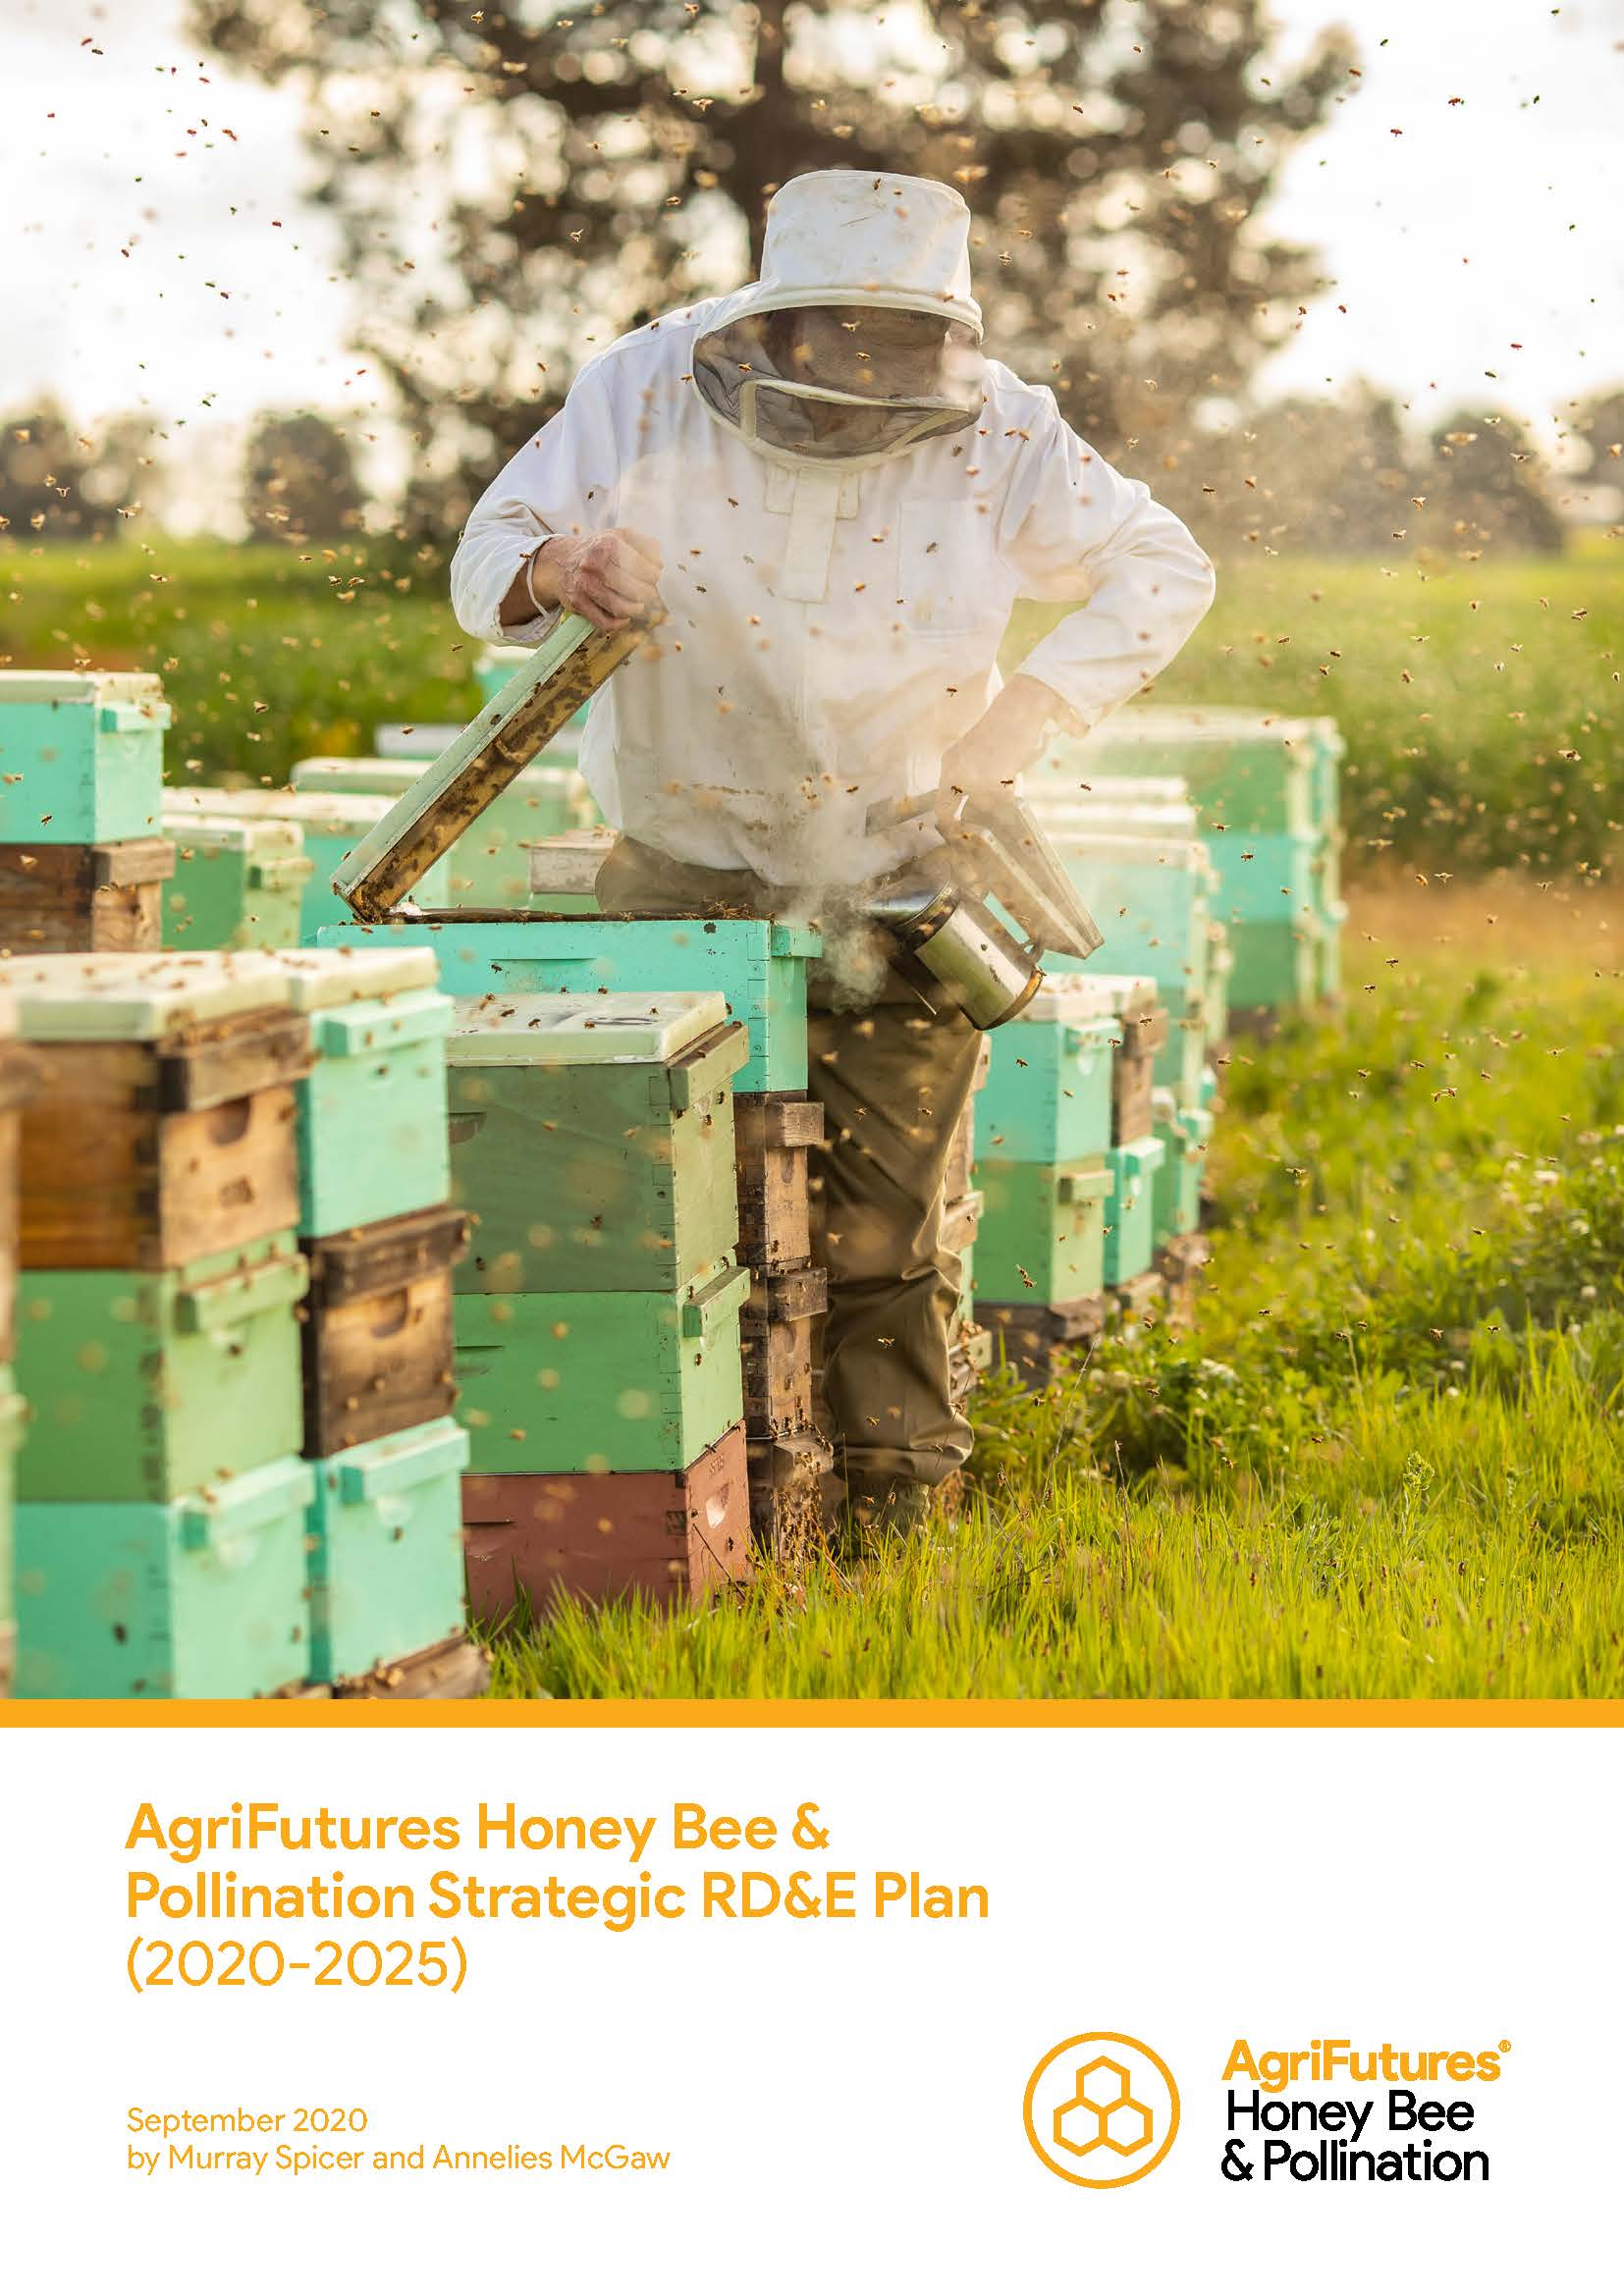 AgriFutures Honey Bee & Pollination Strategic RD&E Plan (2020-2025) - image